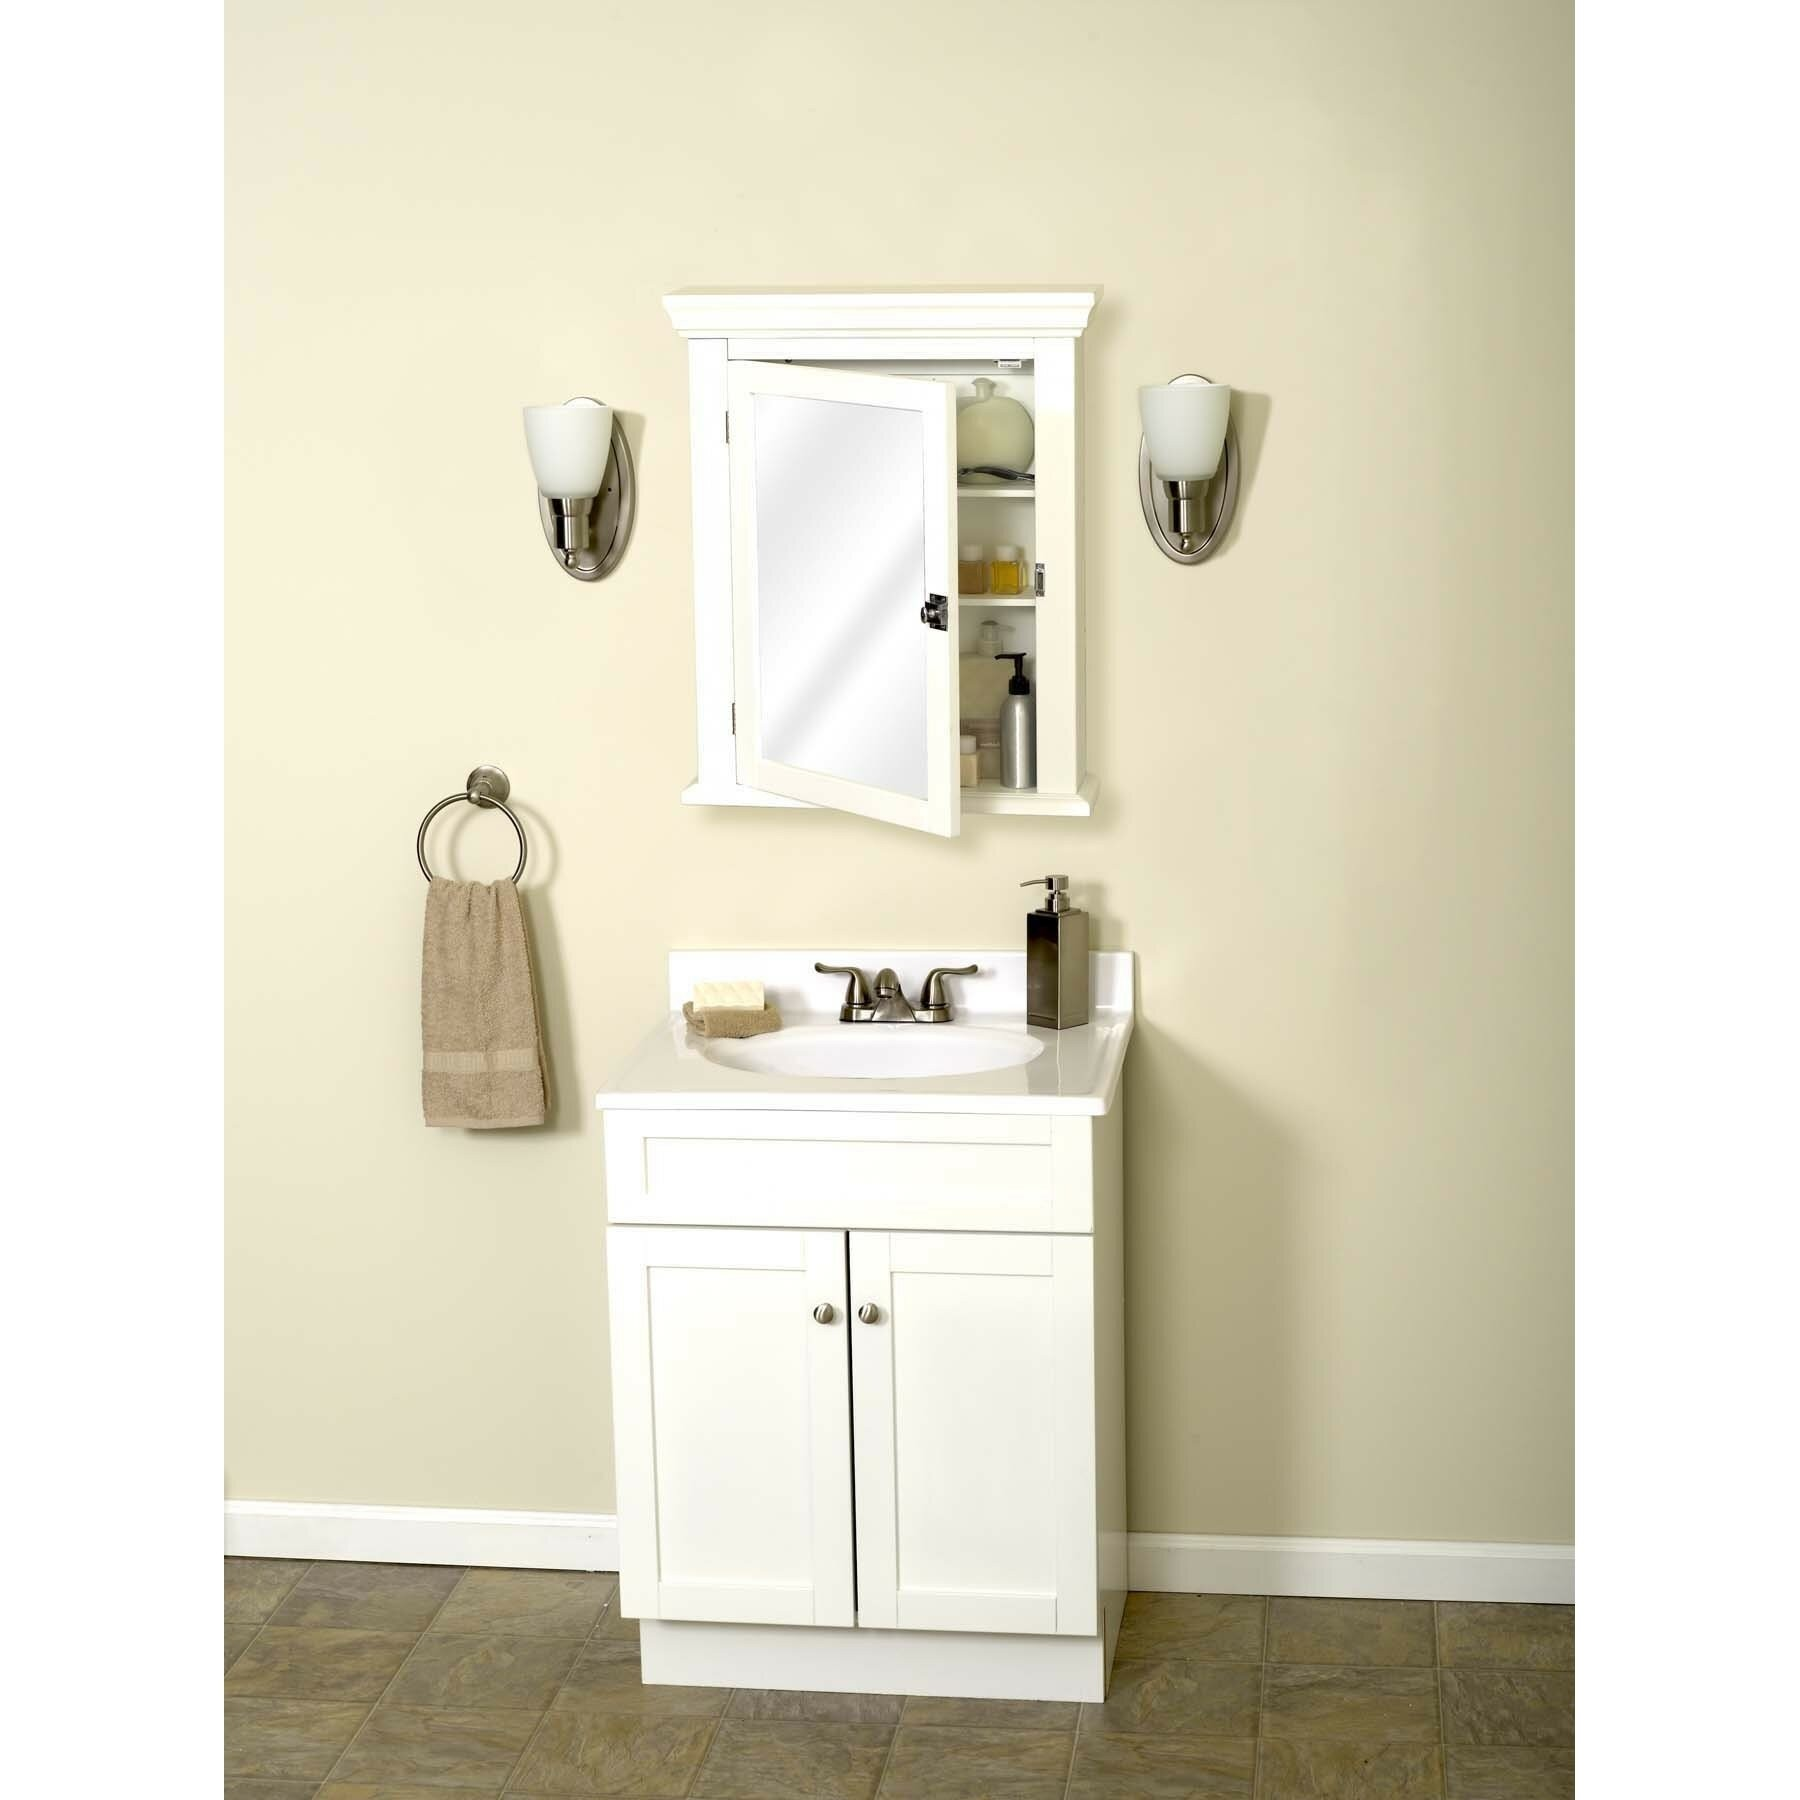 Zenith Products MC10WW Early American Mirrored Medicine Cabinet, 22 Inch By  27 Inch